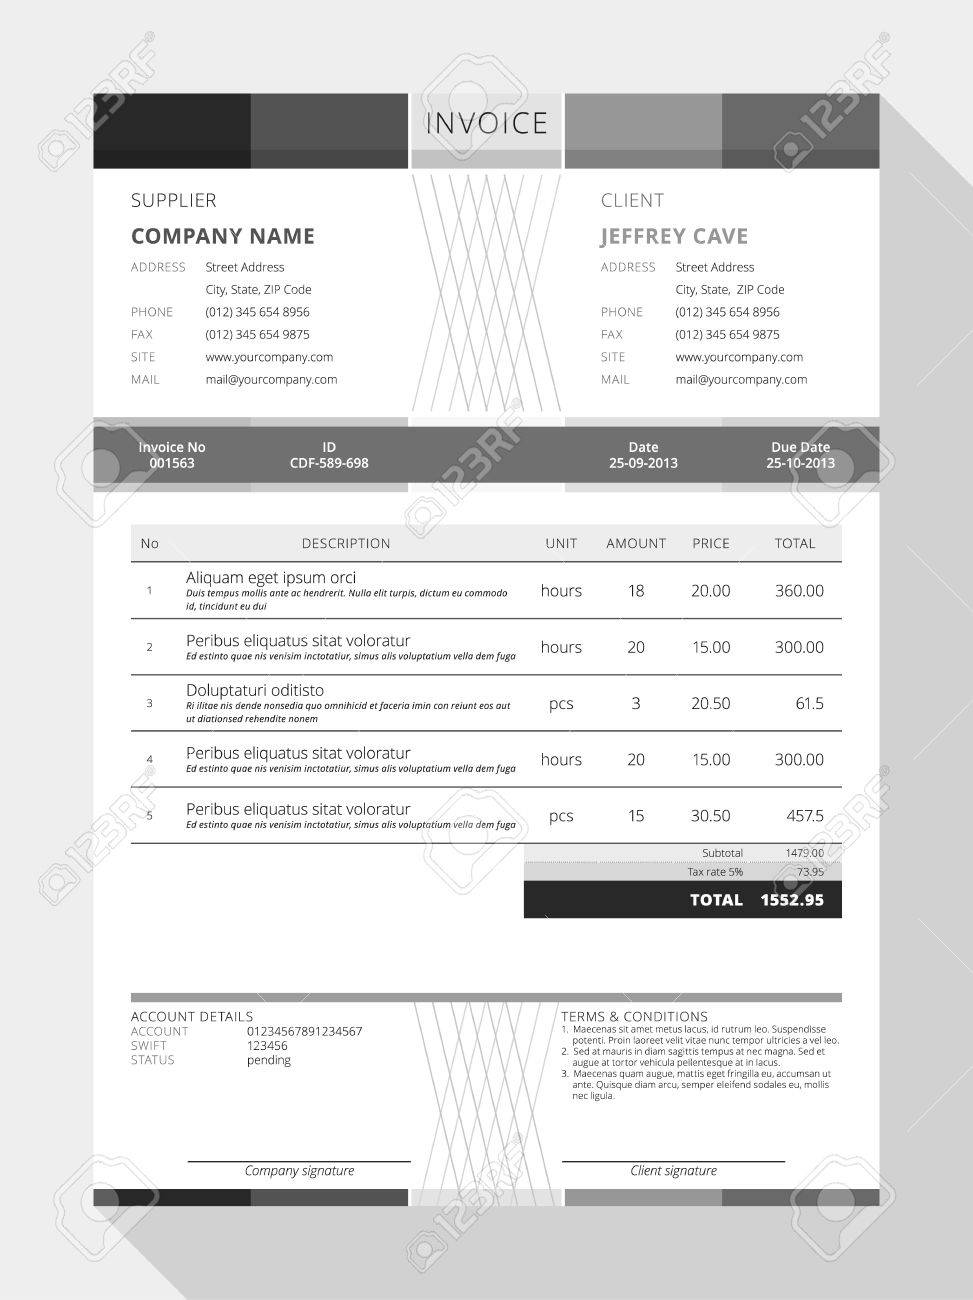 Darkfaderus  Ravishing Design An Invoice  Professional Graphic Design Invoice  With Heavenly Vector Customizable Invoice Form Template Design Vector   Design An Invoice With Cool Invoice Dispute Letter Also Immigrant Visa Processing Fee Invoice In Addition Free Invoice Creator Online And Sample Auto Repair Invoice As Well As Auto Repair Invoicing Software Additionally Official Invoice Template From Happytomco With Darkfaderus  Heavenly Design An Invoice  Professional Graphic Design Invoice  With Cool Vector Customizable Invoice Form Template Design Vector   Design An Invoice And Ravishing Invoice Dispute Letter Also Immigrant Visa Processing Fee Invoice In Addition Free Invoice Creator Online From Happytomco